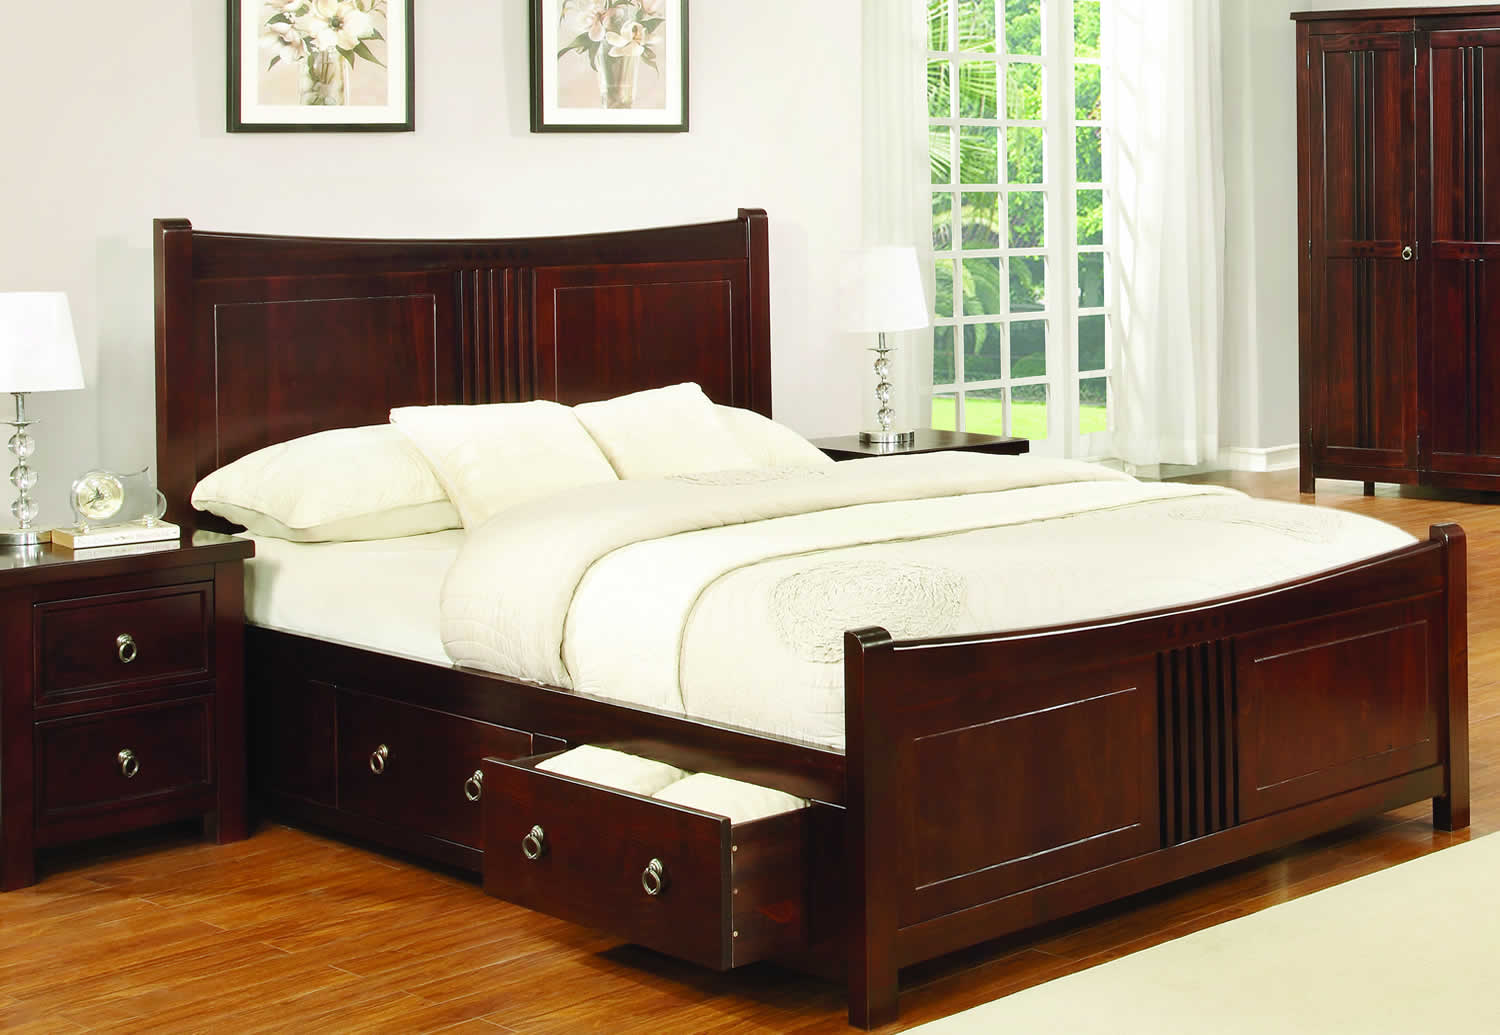 Sweet Dreams Curlew Cognac Drawer Bed Frame Solid Wood 150cm King Size 5FT